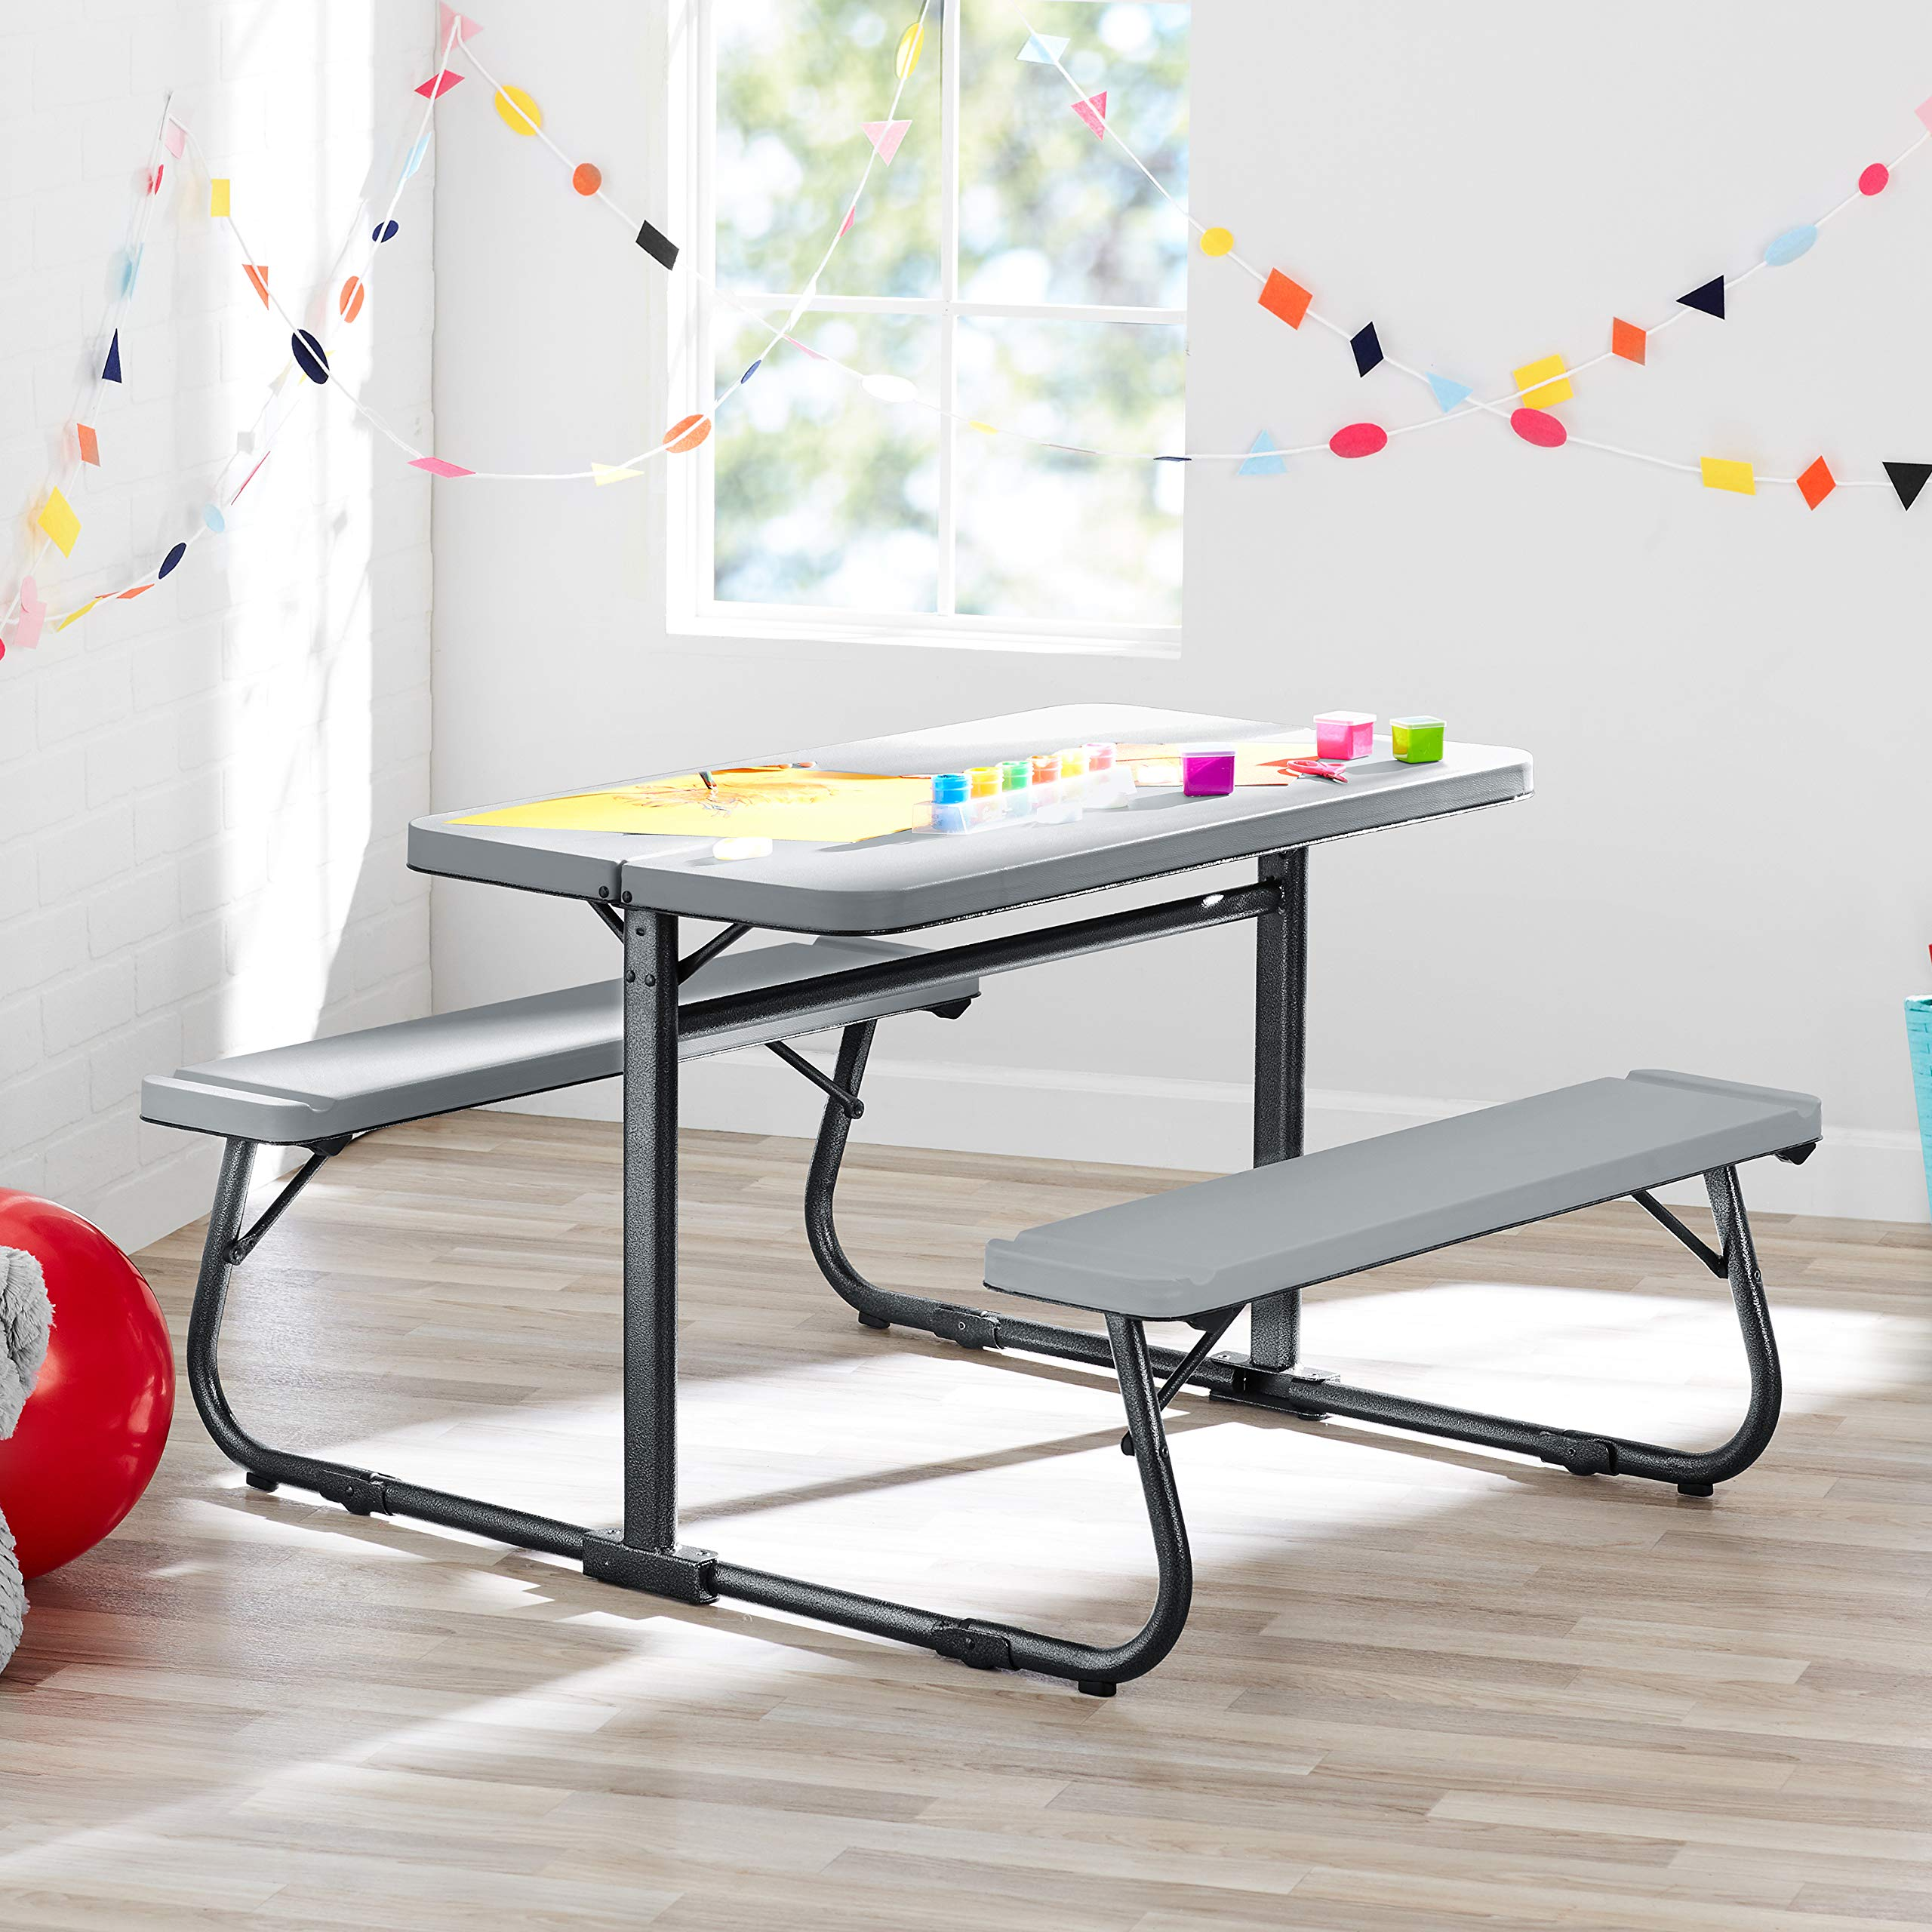 Innovative and Sturdy Your Zone Folding Kid's Activity Table with Two Benches,Soft Silver,Perfect for Homework,Arts and Grafts,Games,Wonderful Addition to Kid's Bedroom,Play/Activity Room,Classroom by YZone